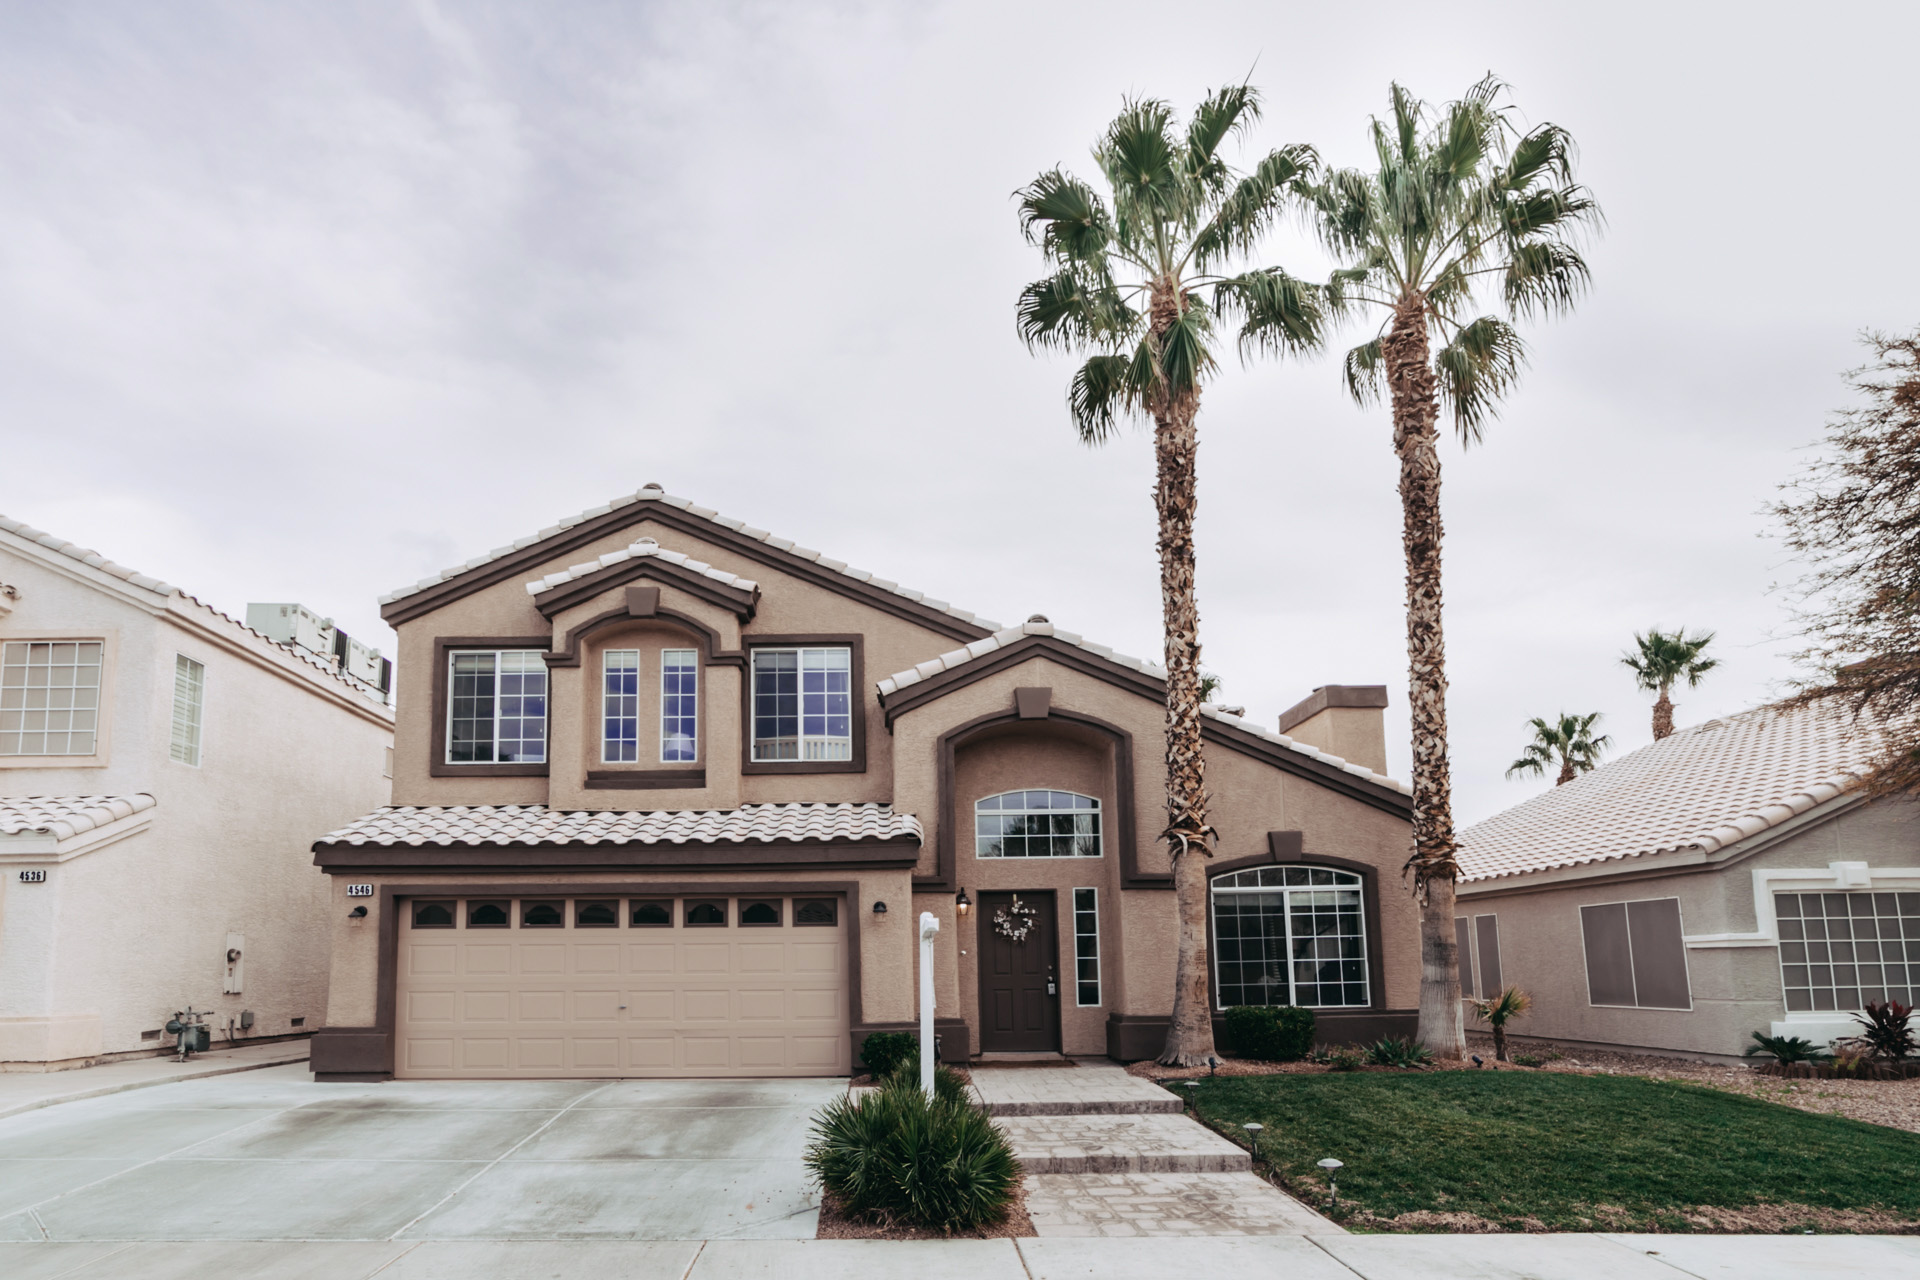 Las Vegas Real Estate photography pictures. Residential real estate home photography.